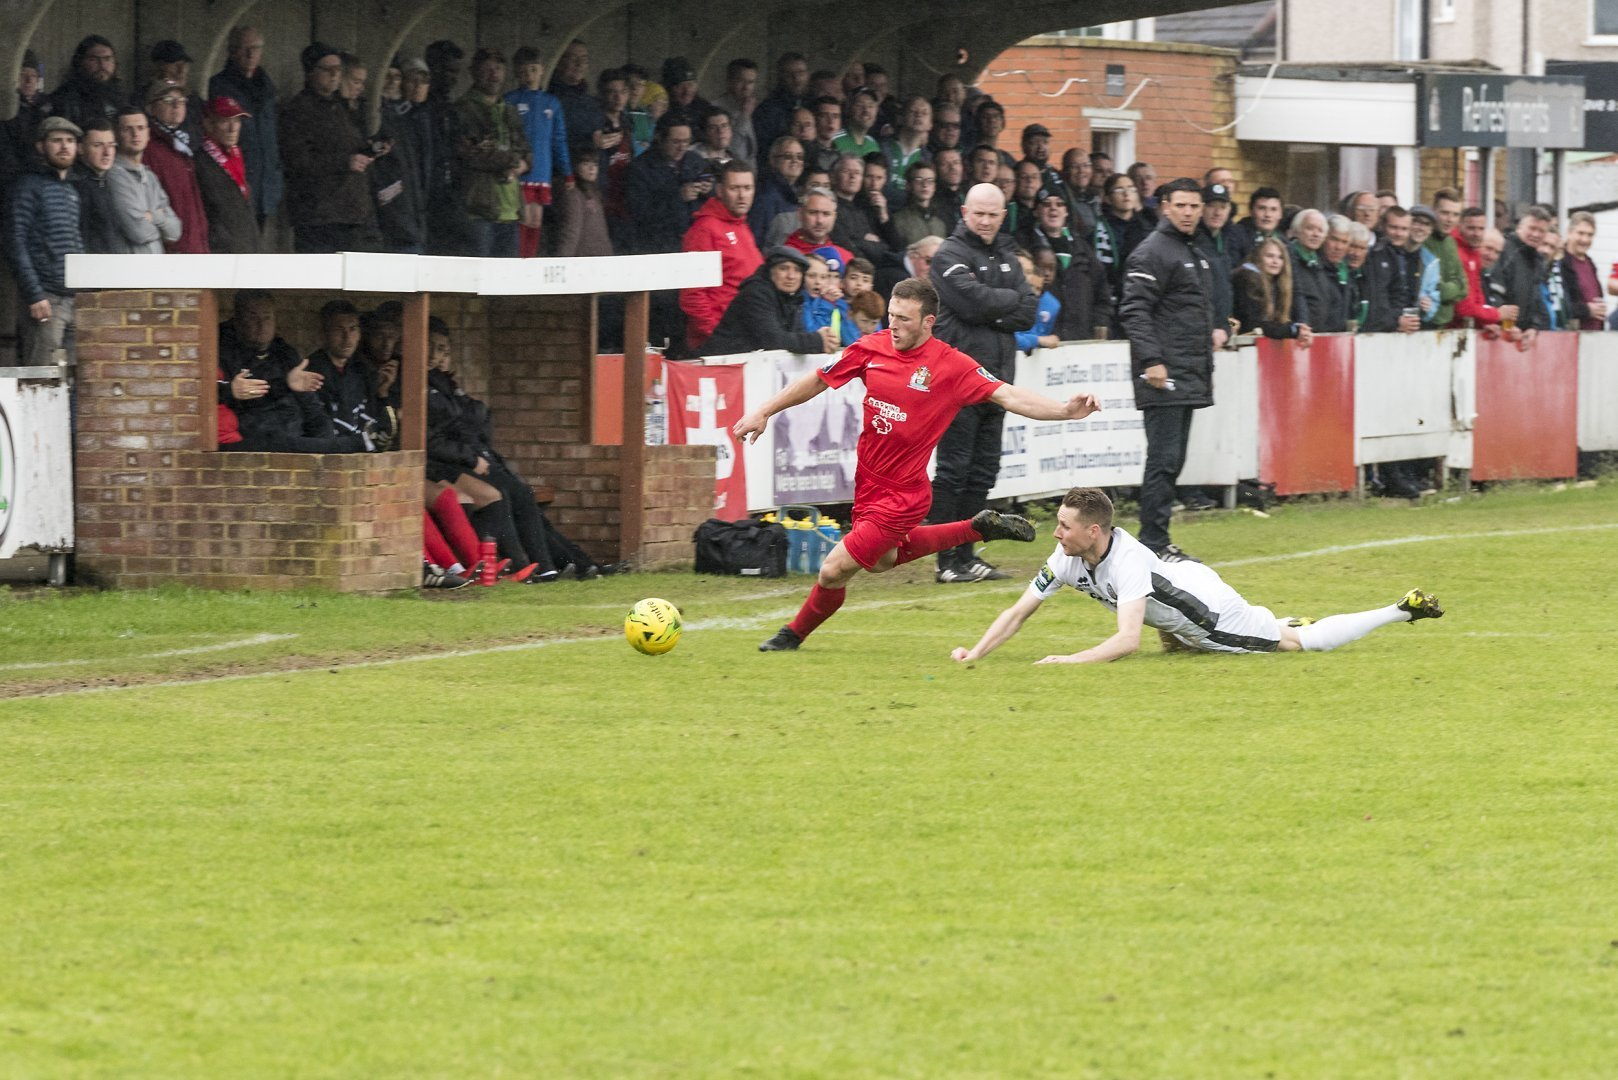 George Moore, pictured in action last season, scored twice at Kings Langley. Picture: Bruce Viveash